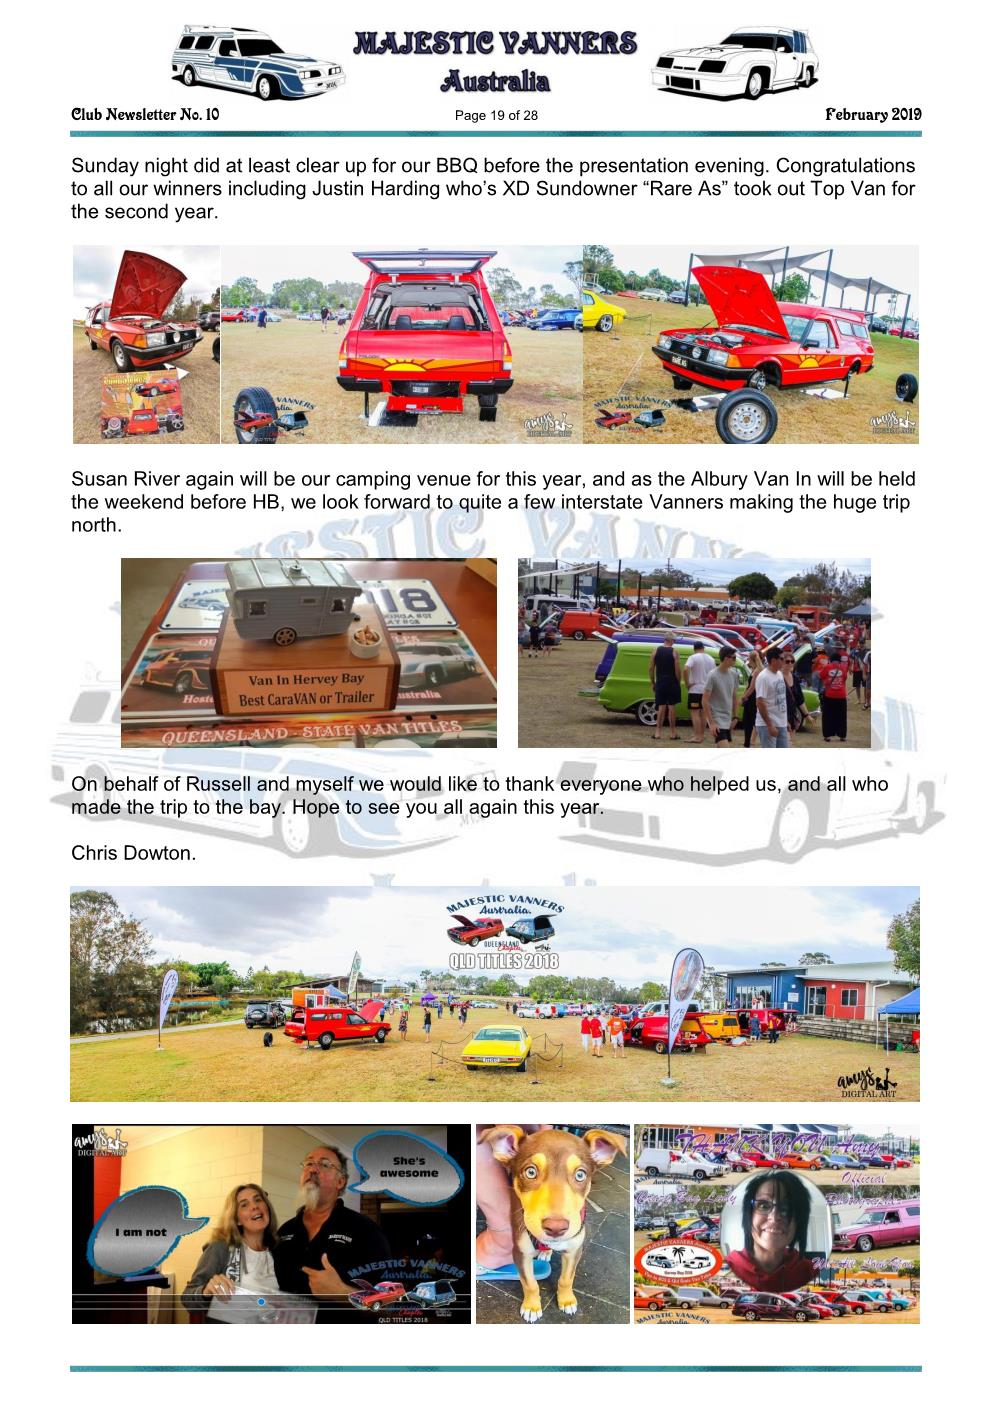 MAJESTIC VANNERS Newsletter Issue No: 10 February 2019 Mv_new28